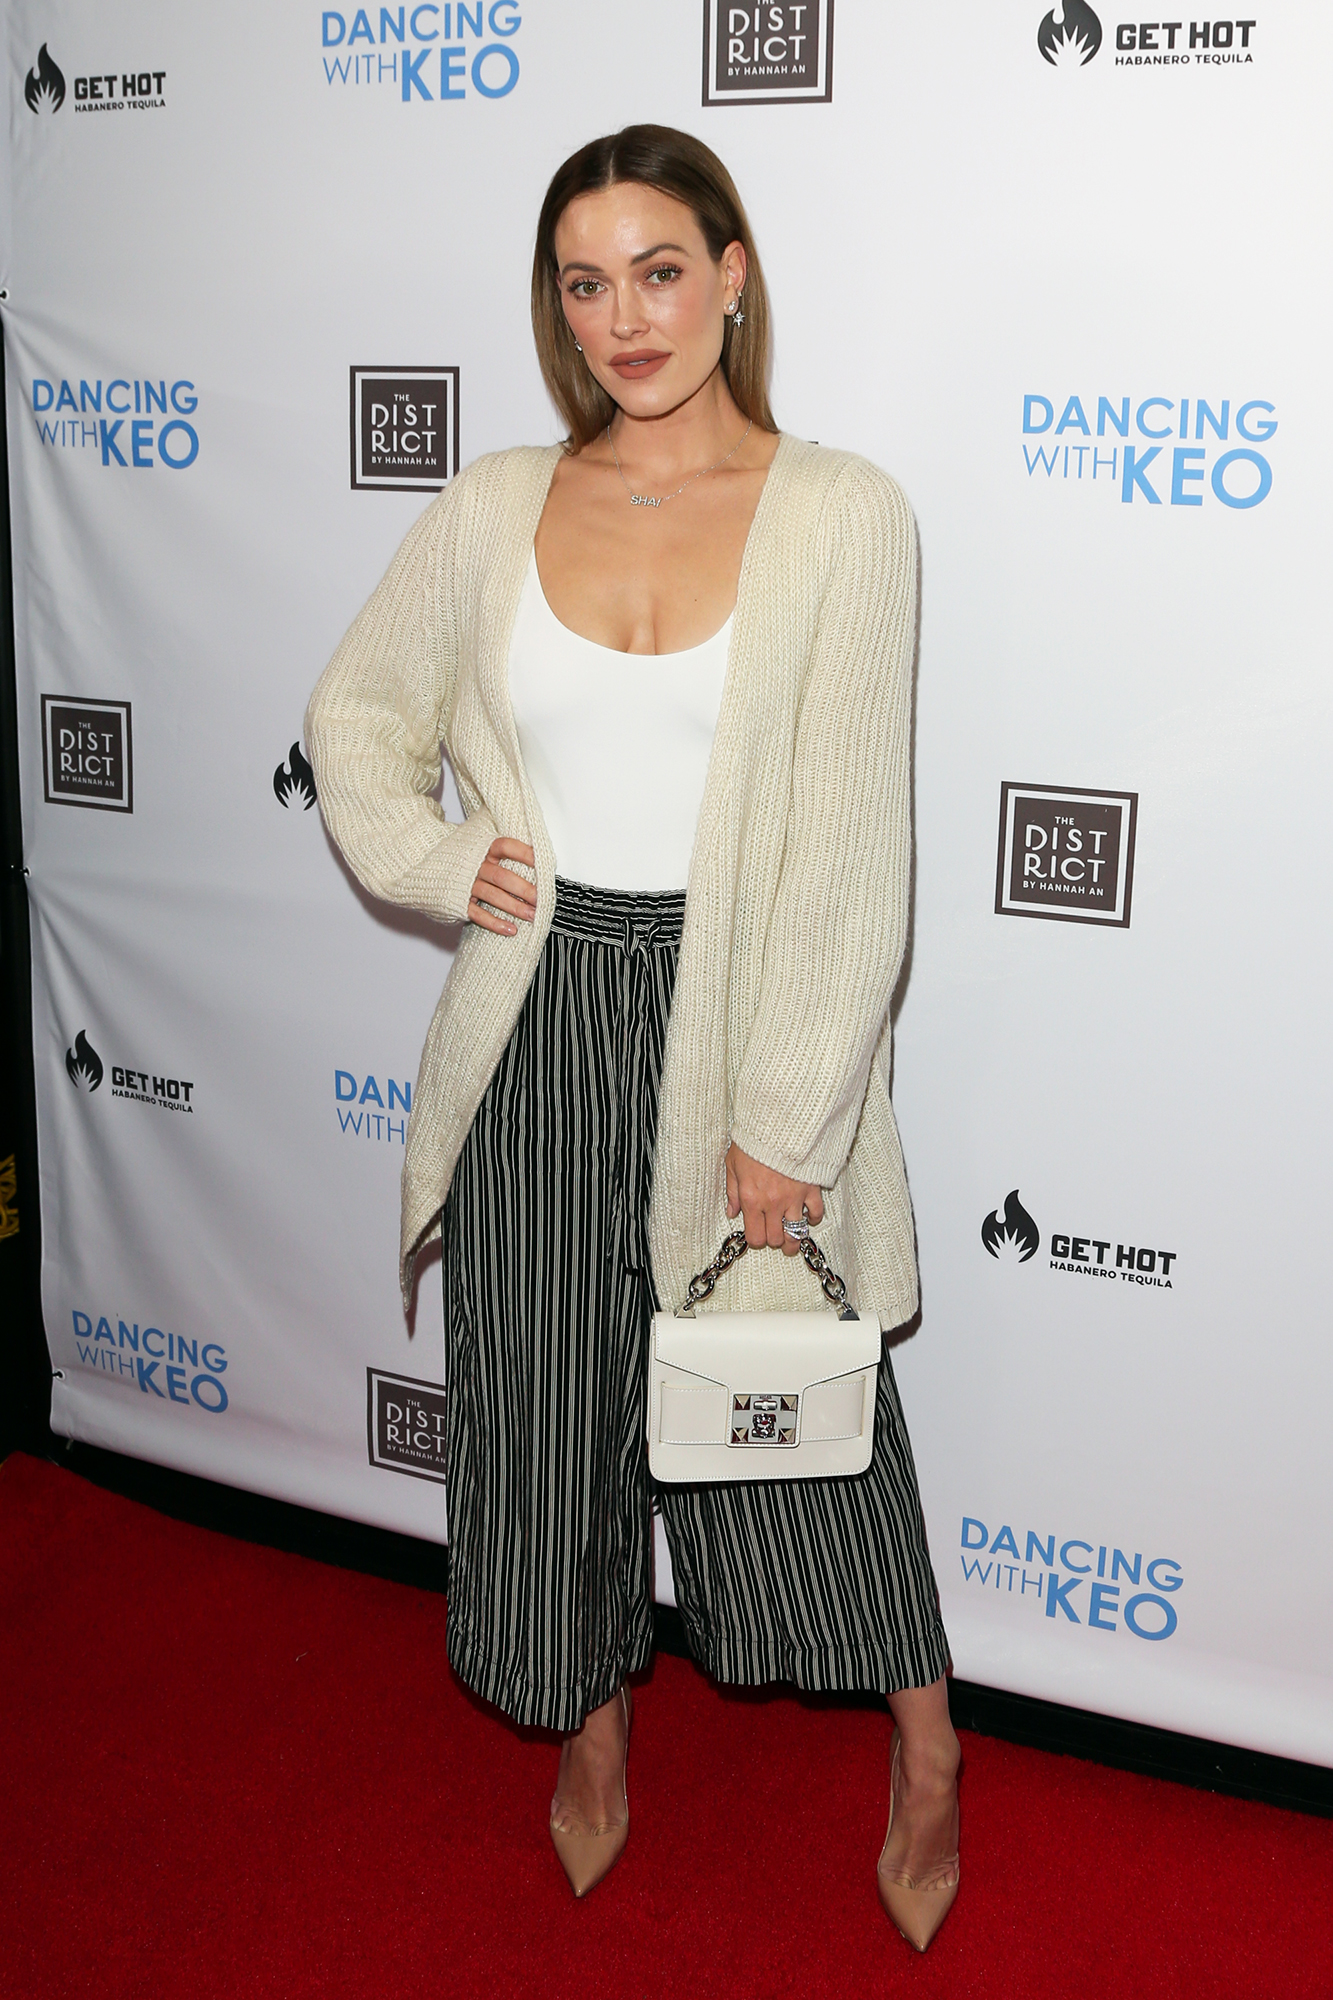 Peta Murgatroyd and Maksim's Son Prefers One Parent - Peta Murgatroyd attends the launch party for 'Dancing With Keo' at The District by Hannah An on October 12, 2018 in Los Angeles, California.